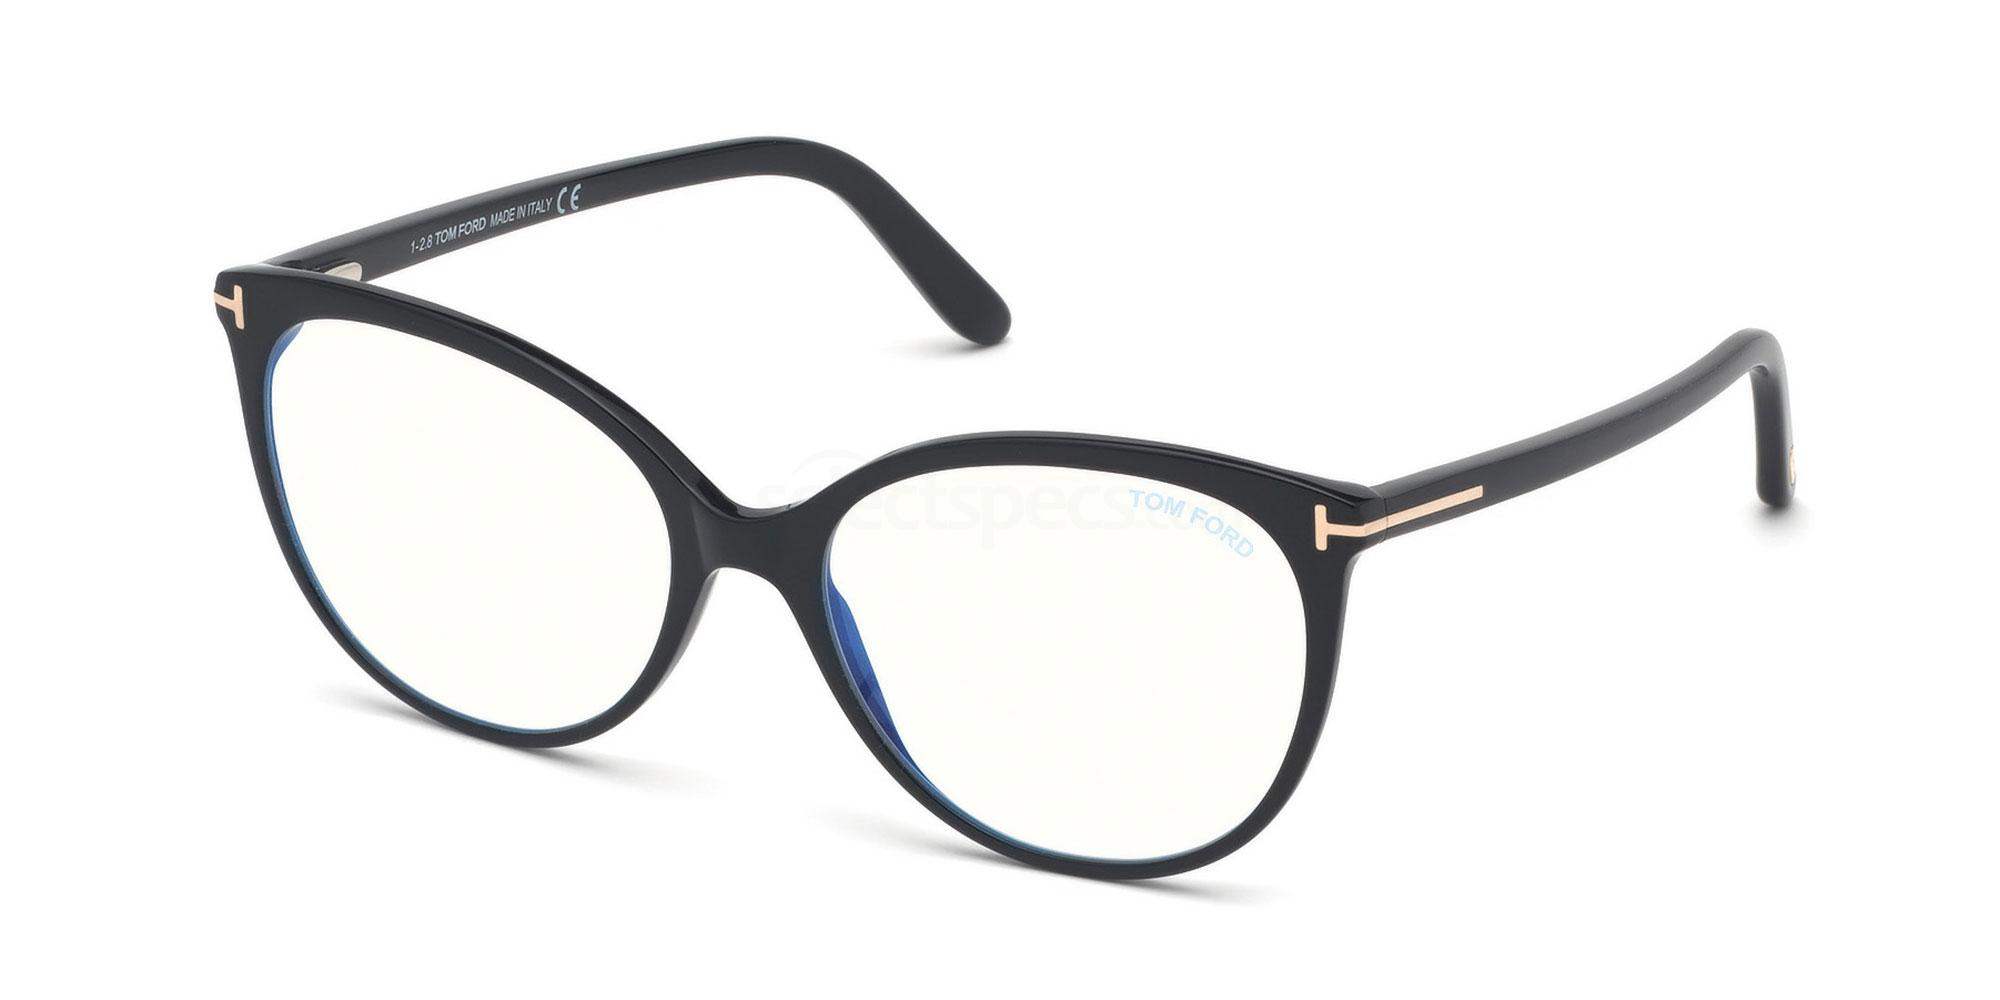 001 FT5598-B Glasses, Tom Ford